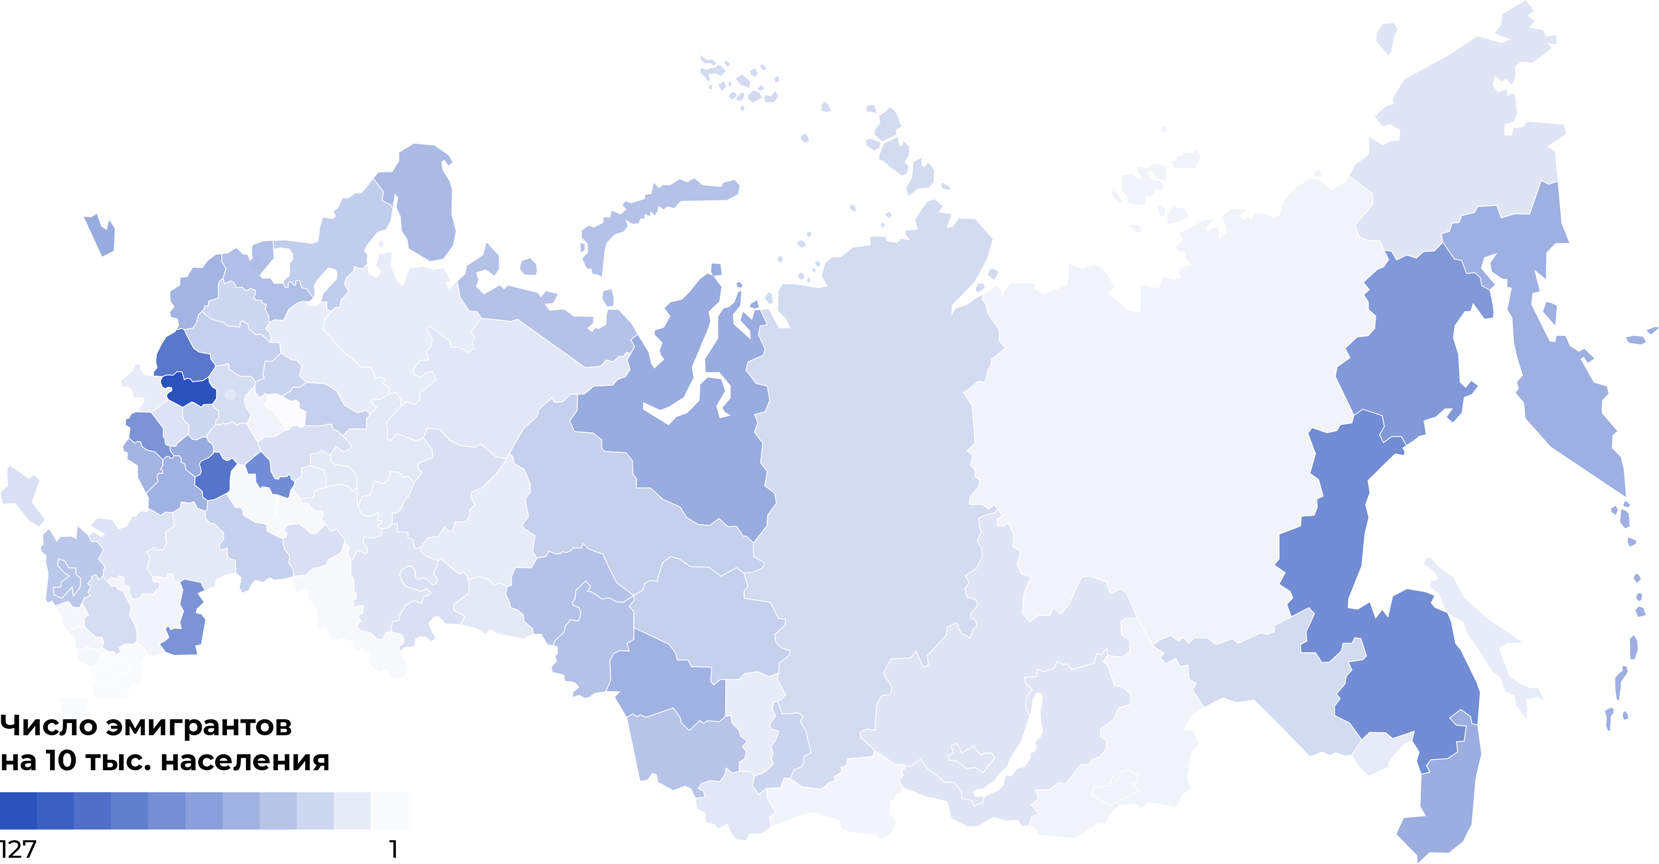 https://www.proekt.media/wp-content/uploads/2019/01/mother-russia-2.png